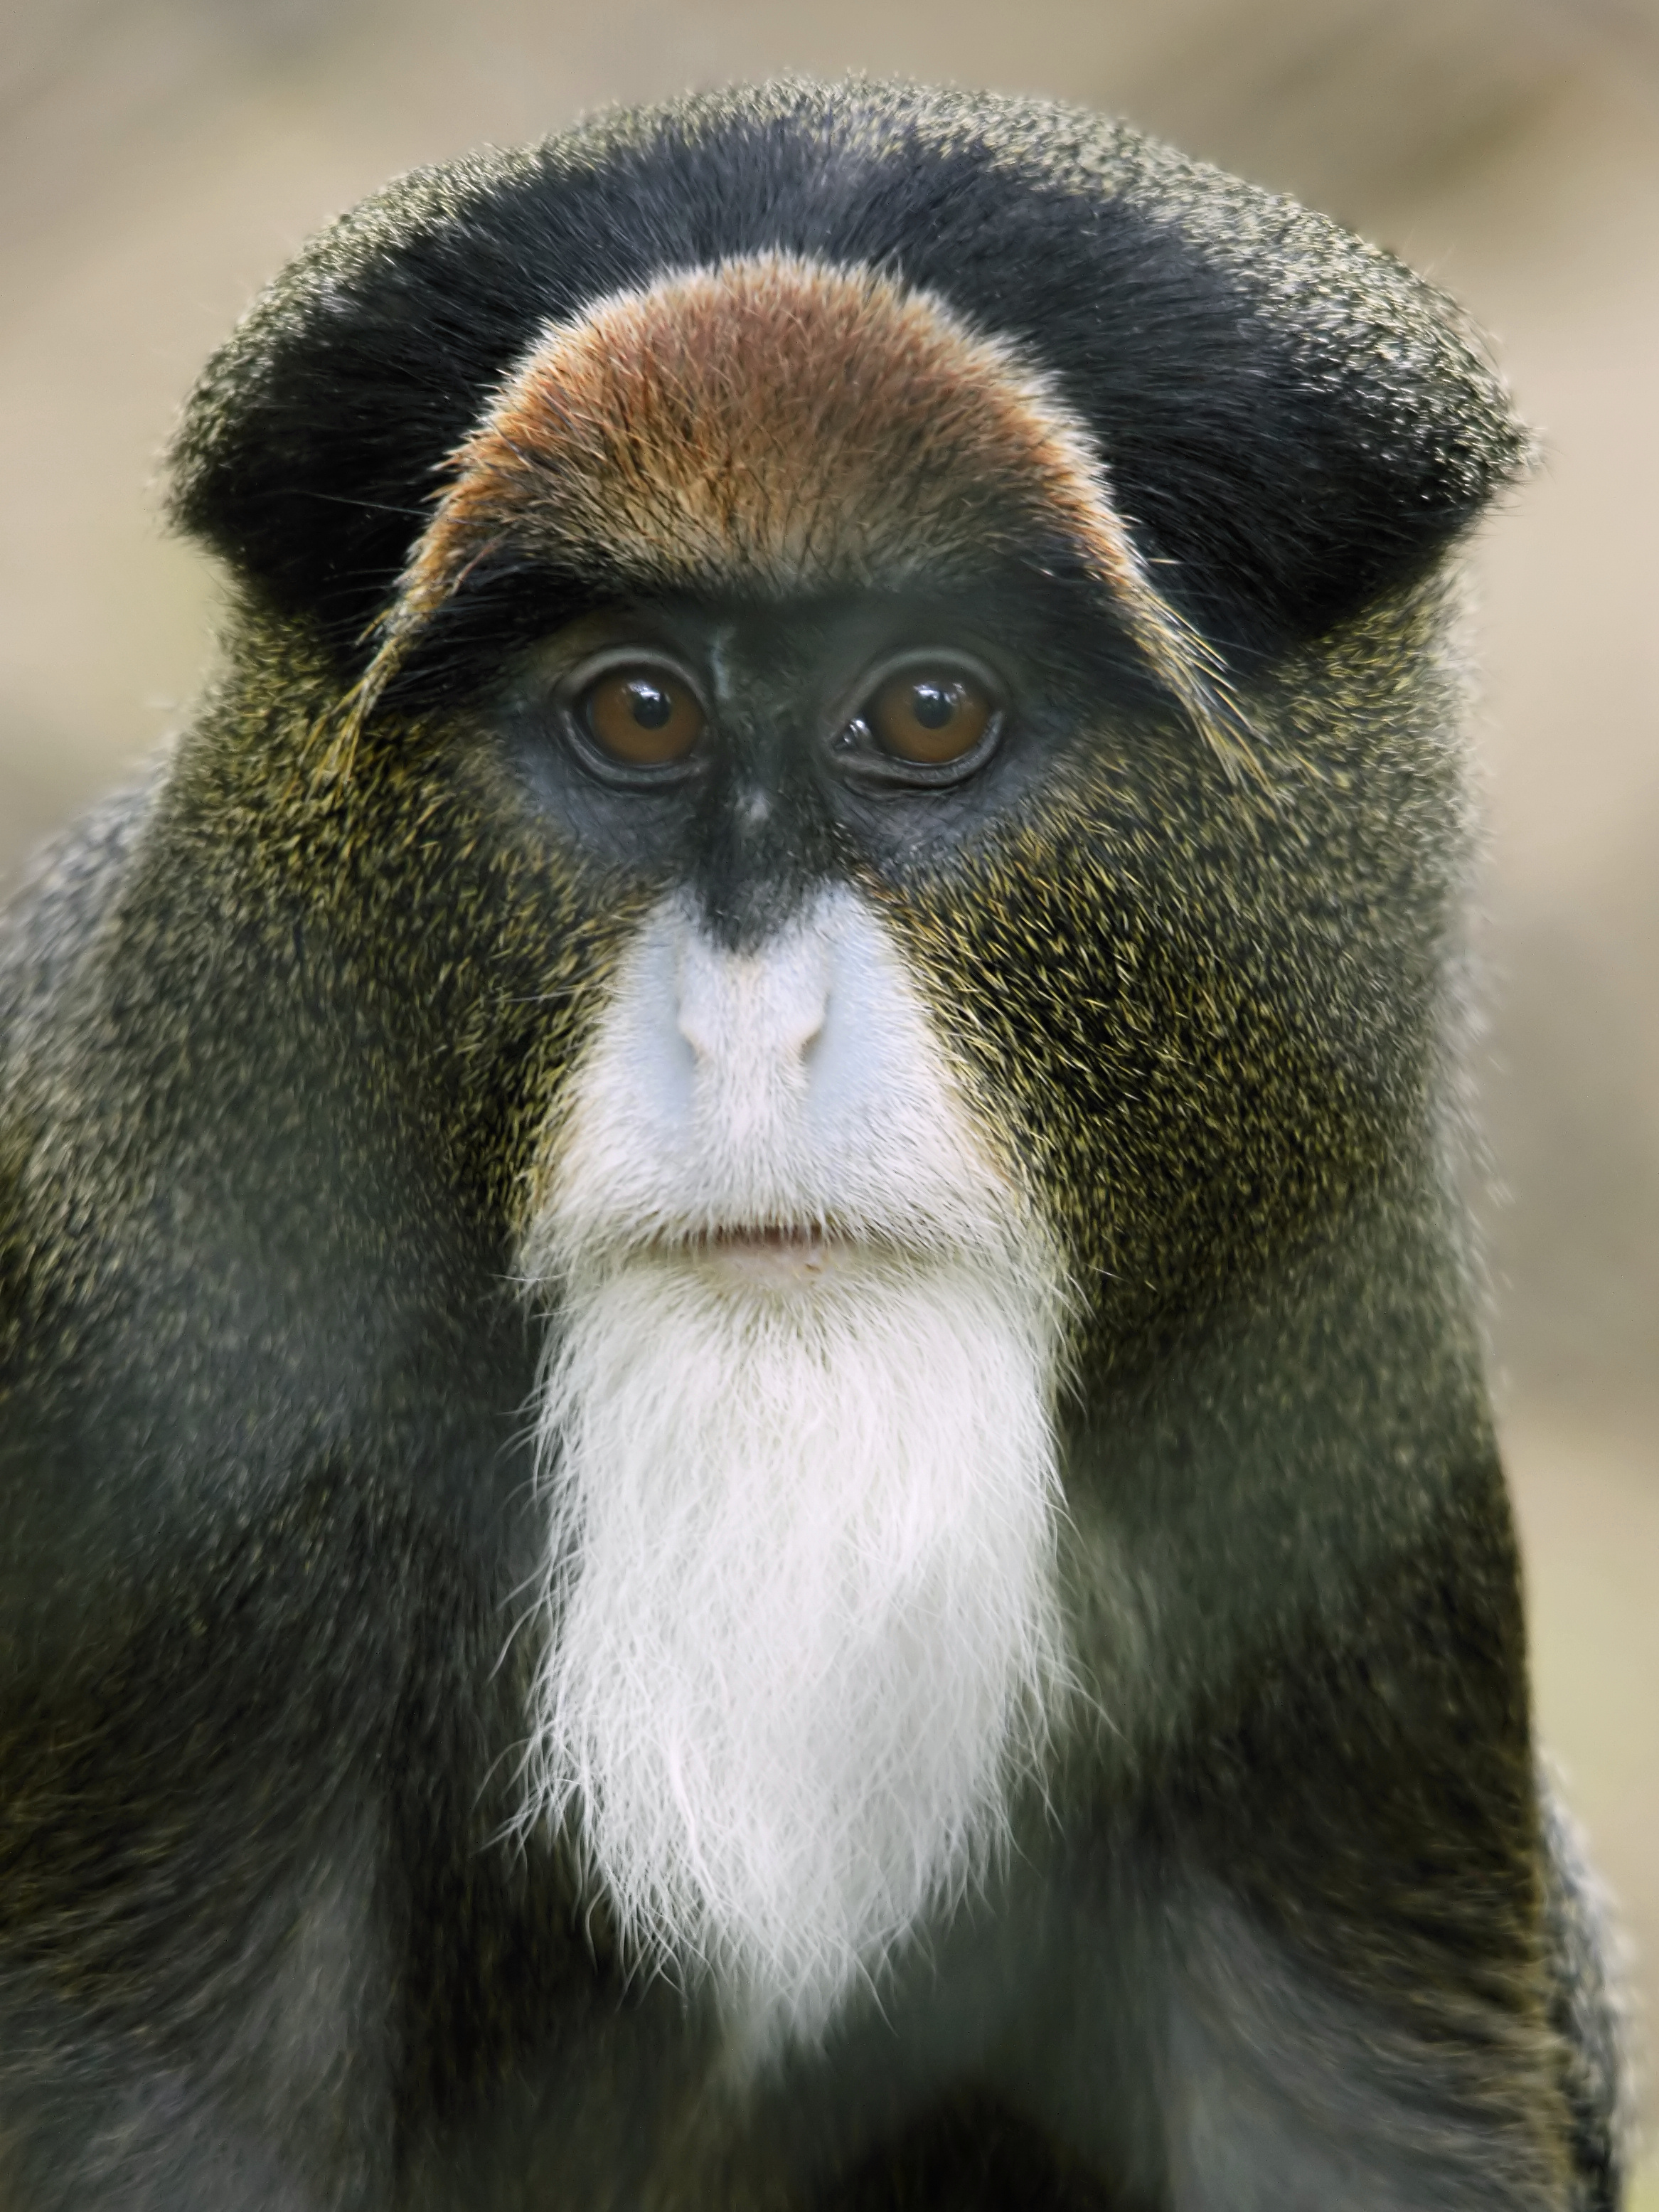 https://upload.wikimedia.org/wikipedia/commons/e/e1/Cercopithecus_neglectus.jpg